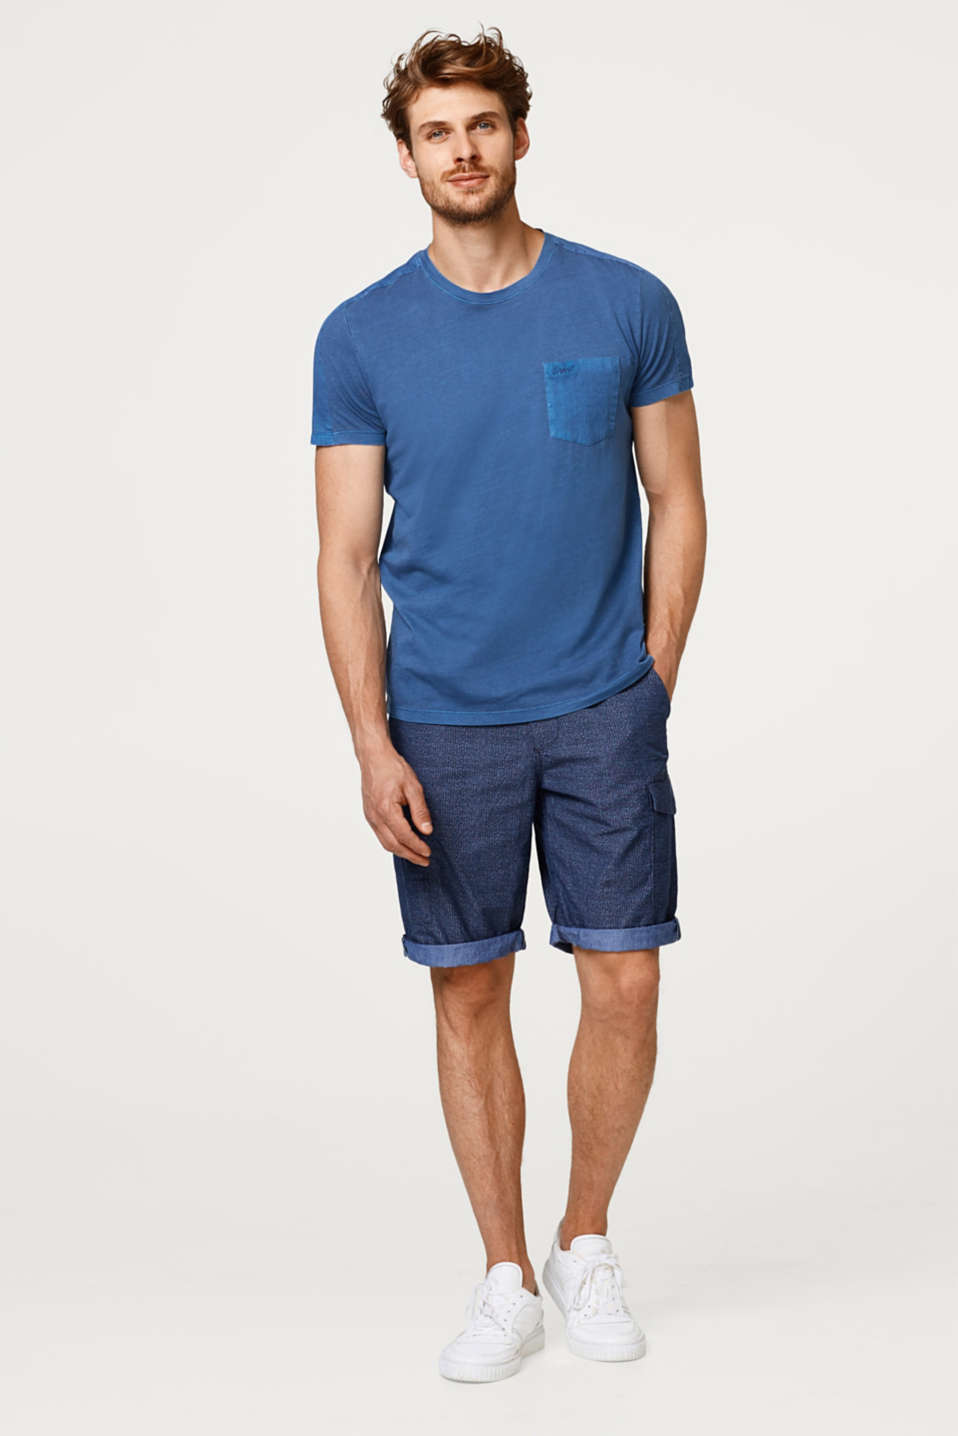 Esprit - Jogging shorts with cargo pockets, made of cotton